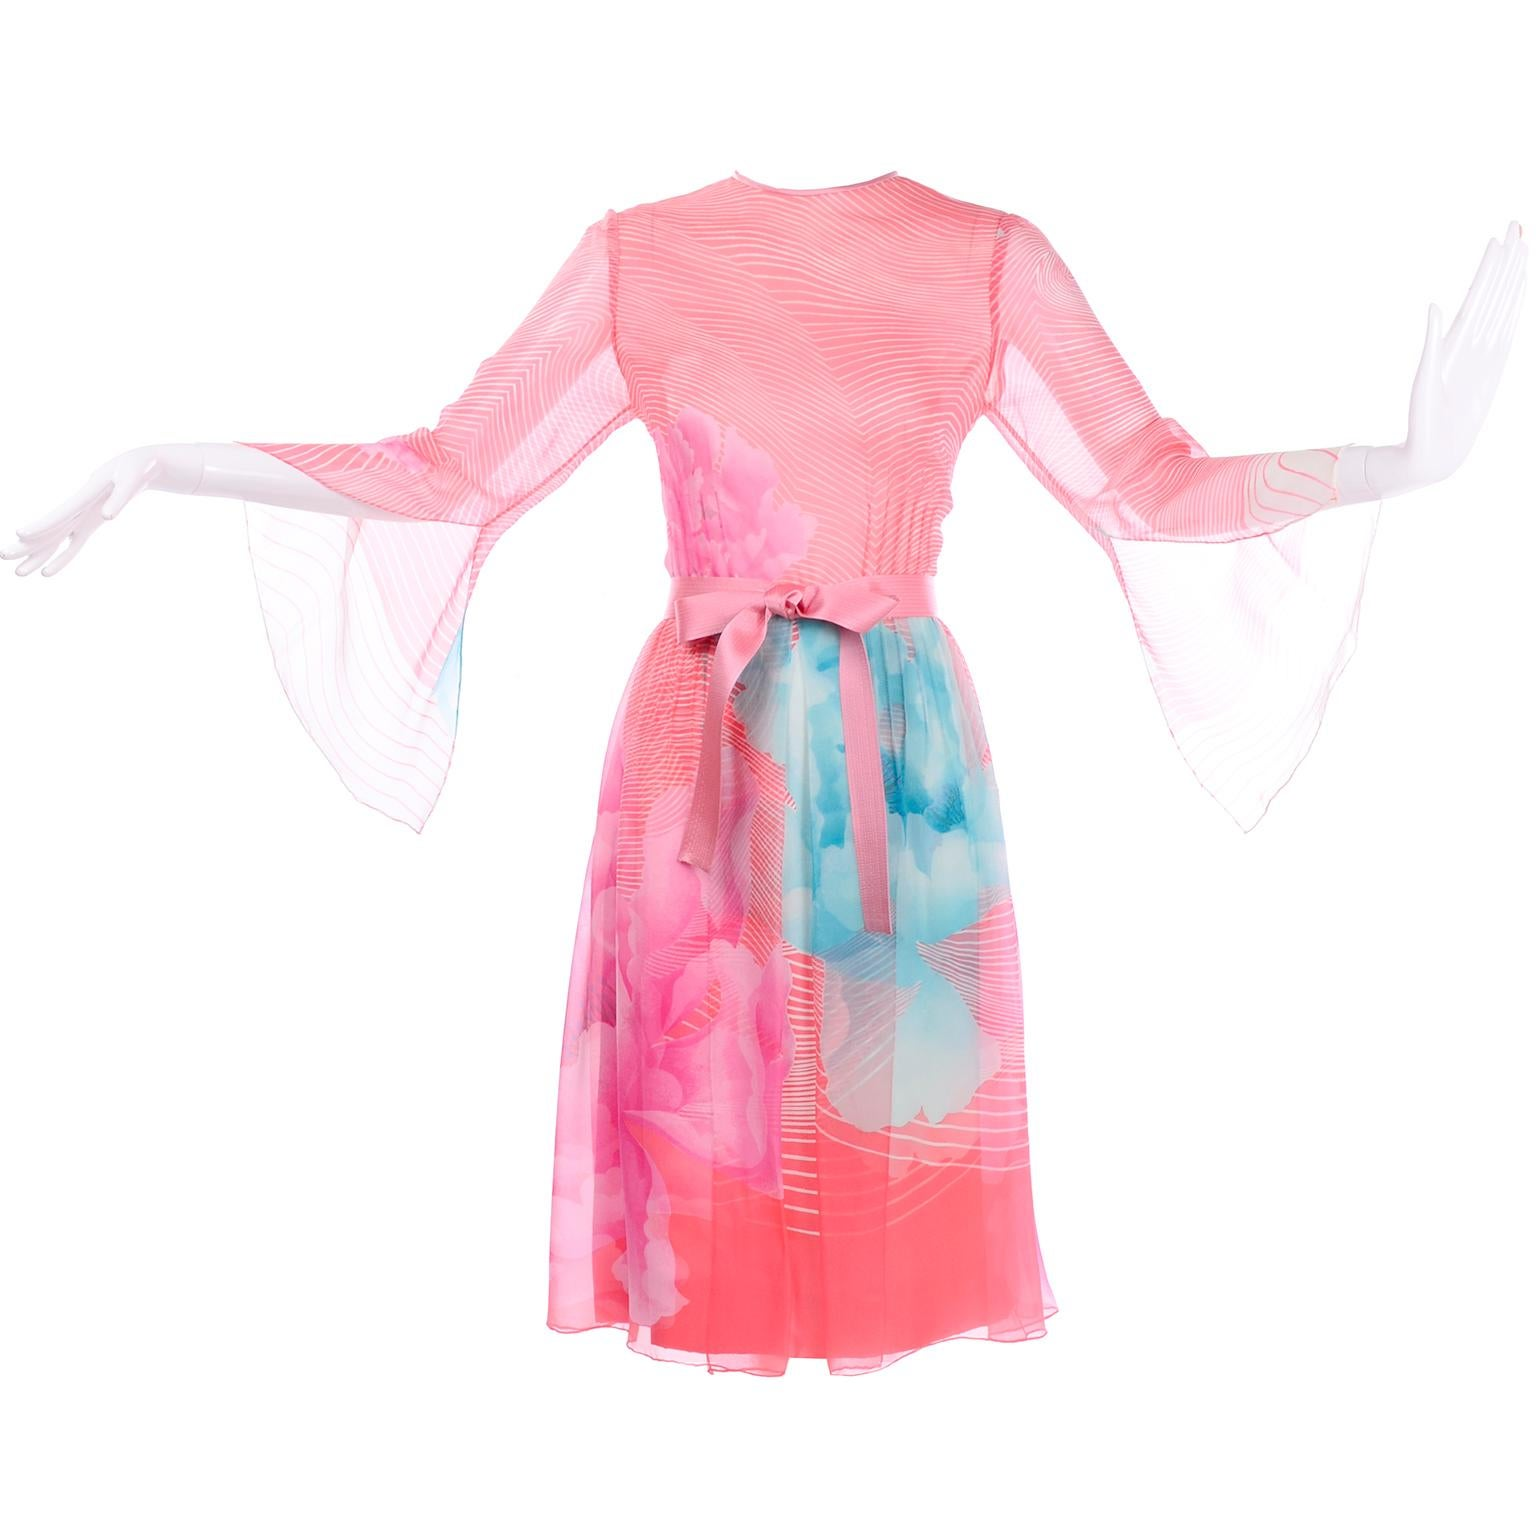 Hanae Mori Japan Vintage Orange Pink & Blue Silk Chiffon Dress Bergdorf Goodman